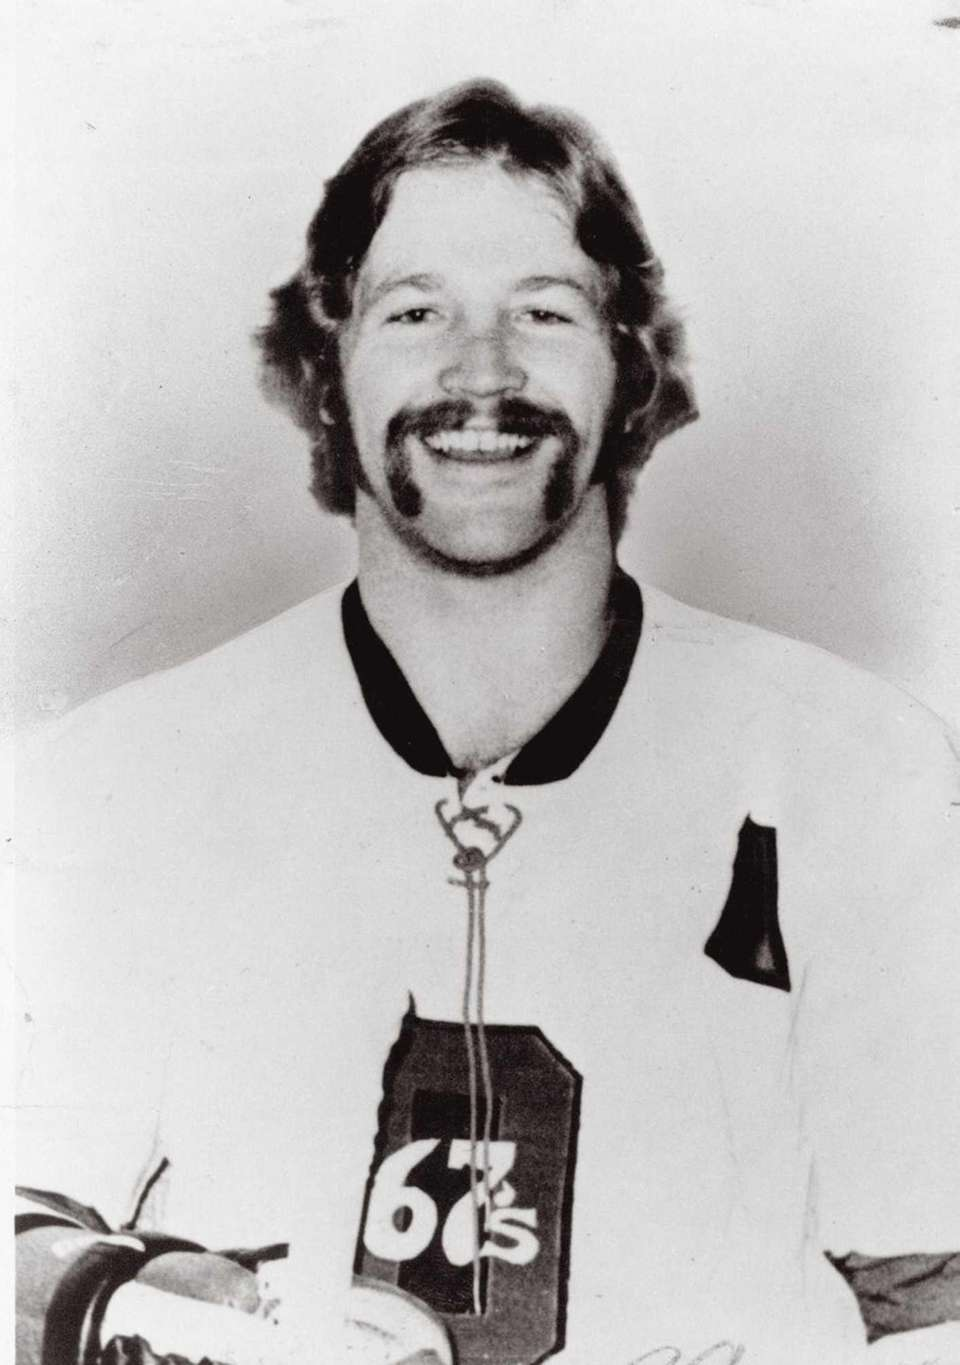 Denis Potvin of the Islanders poses for a